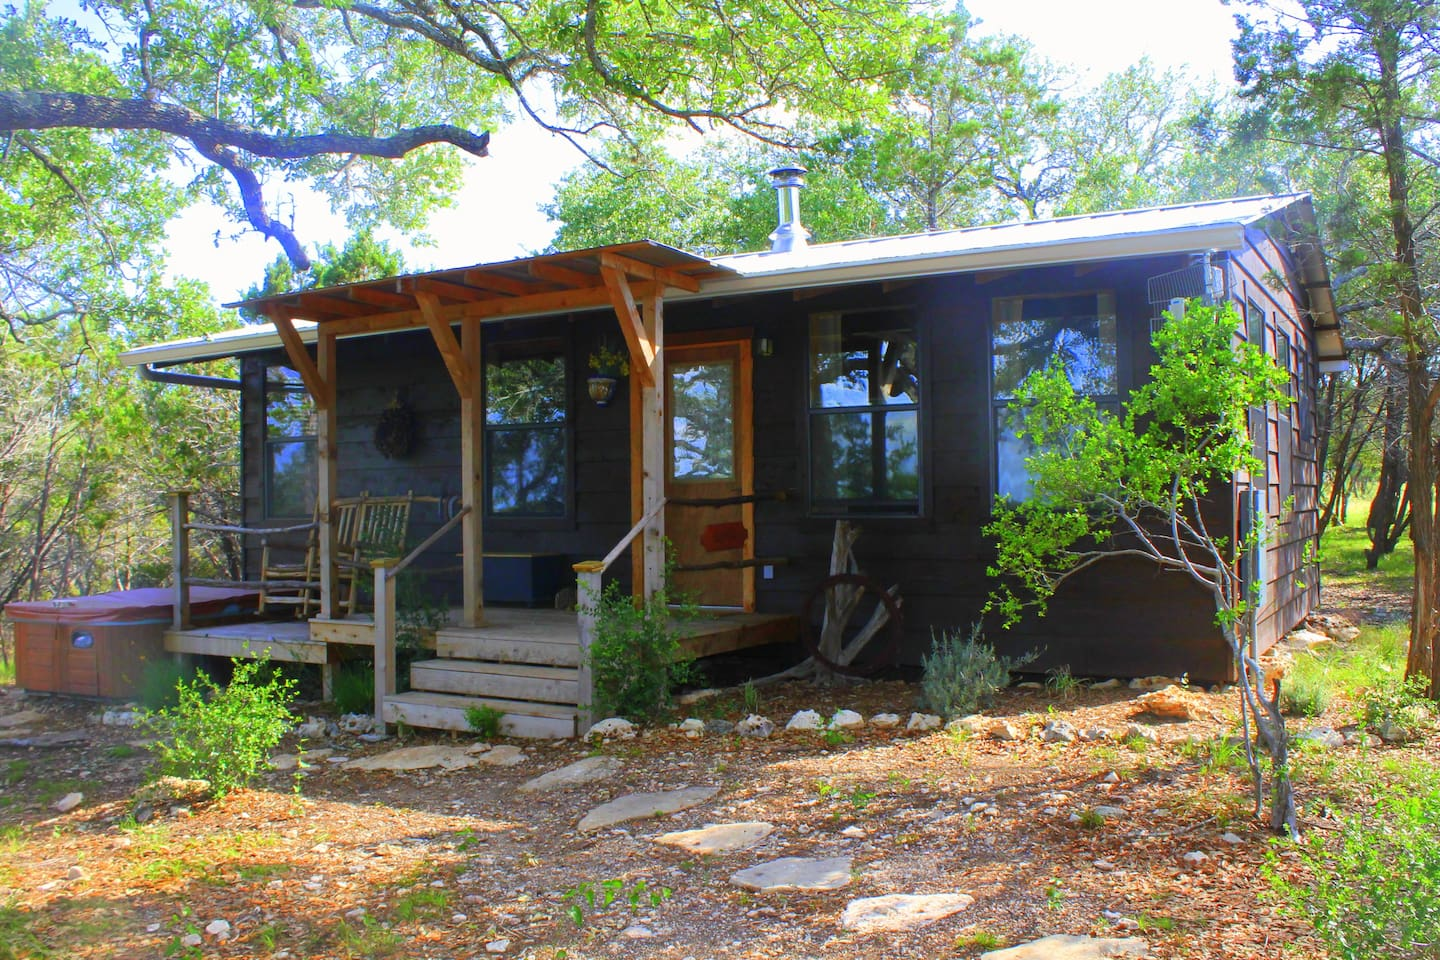 Secluded cabin in the woods with private hot tub and pet friendly